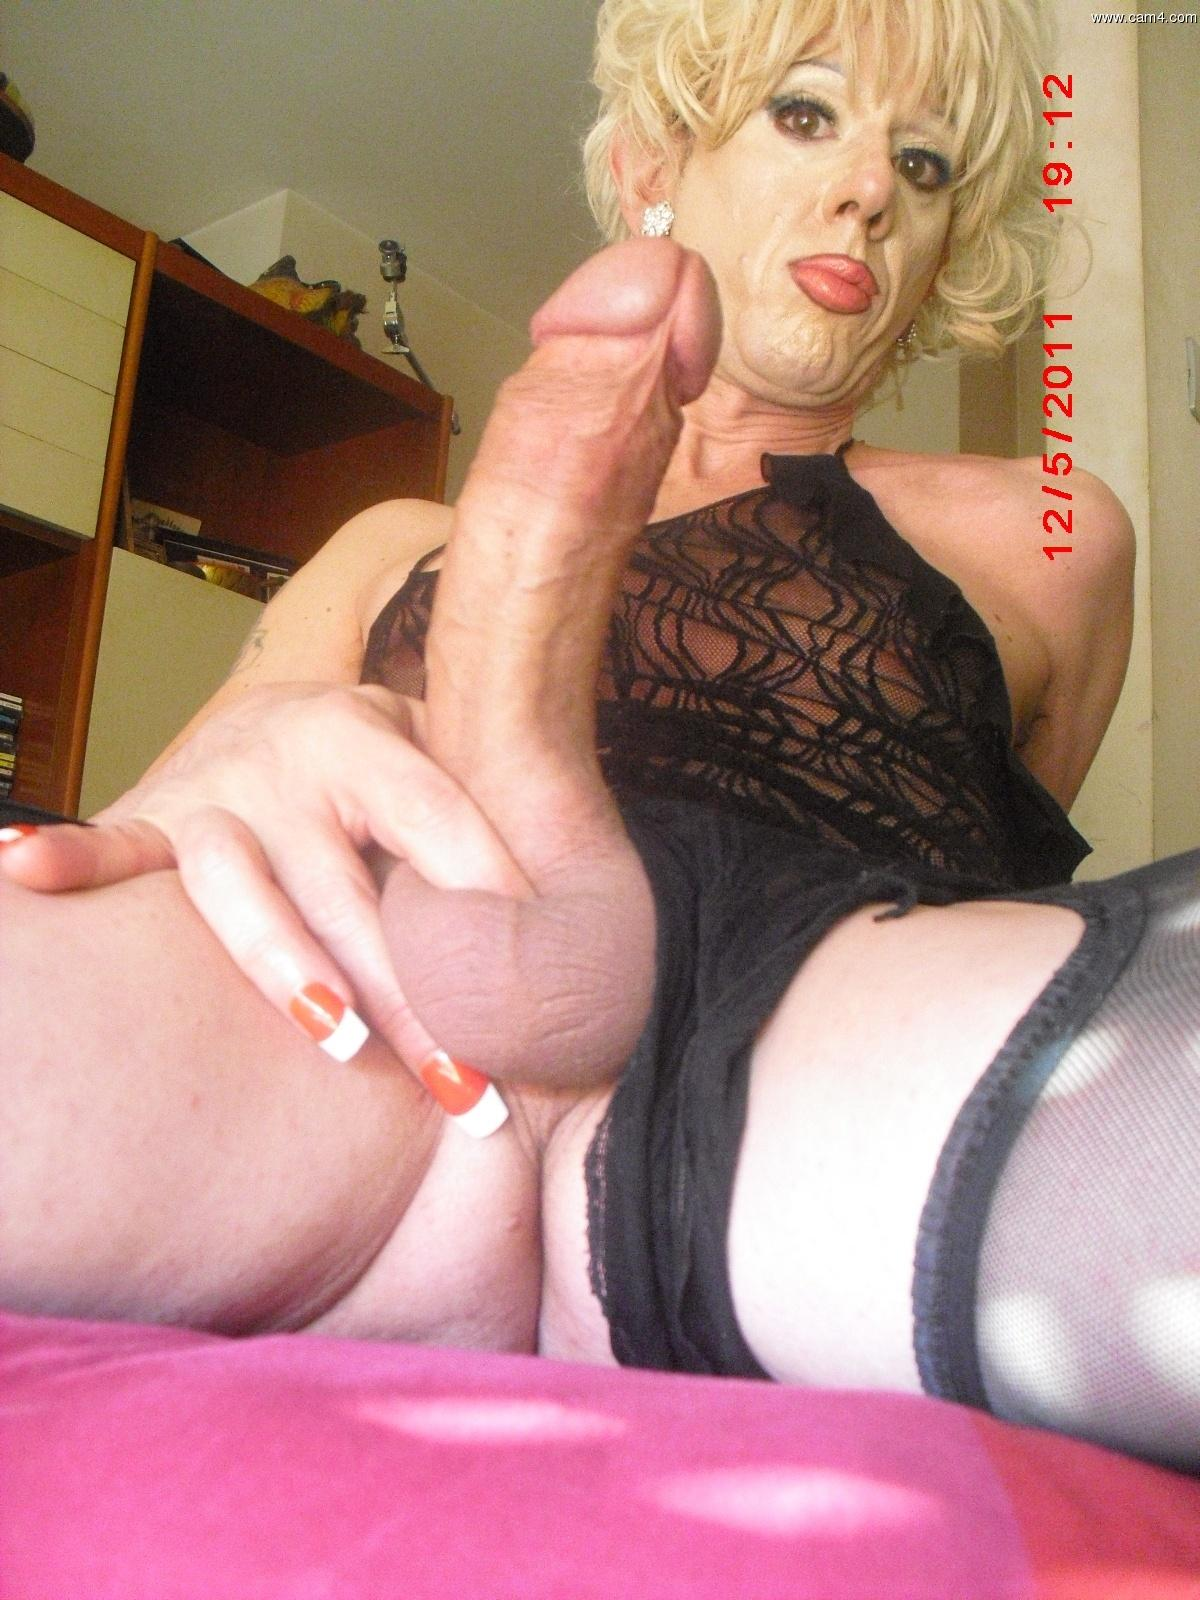 Mature Transvestite /transexual Taking Of His Dress And Showing And Playing